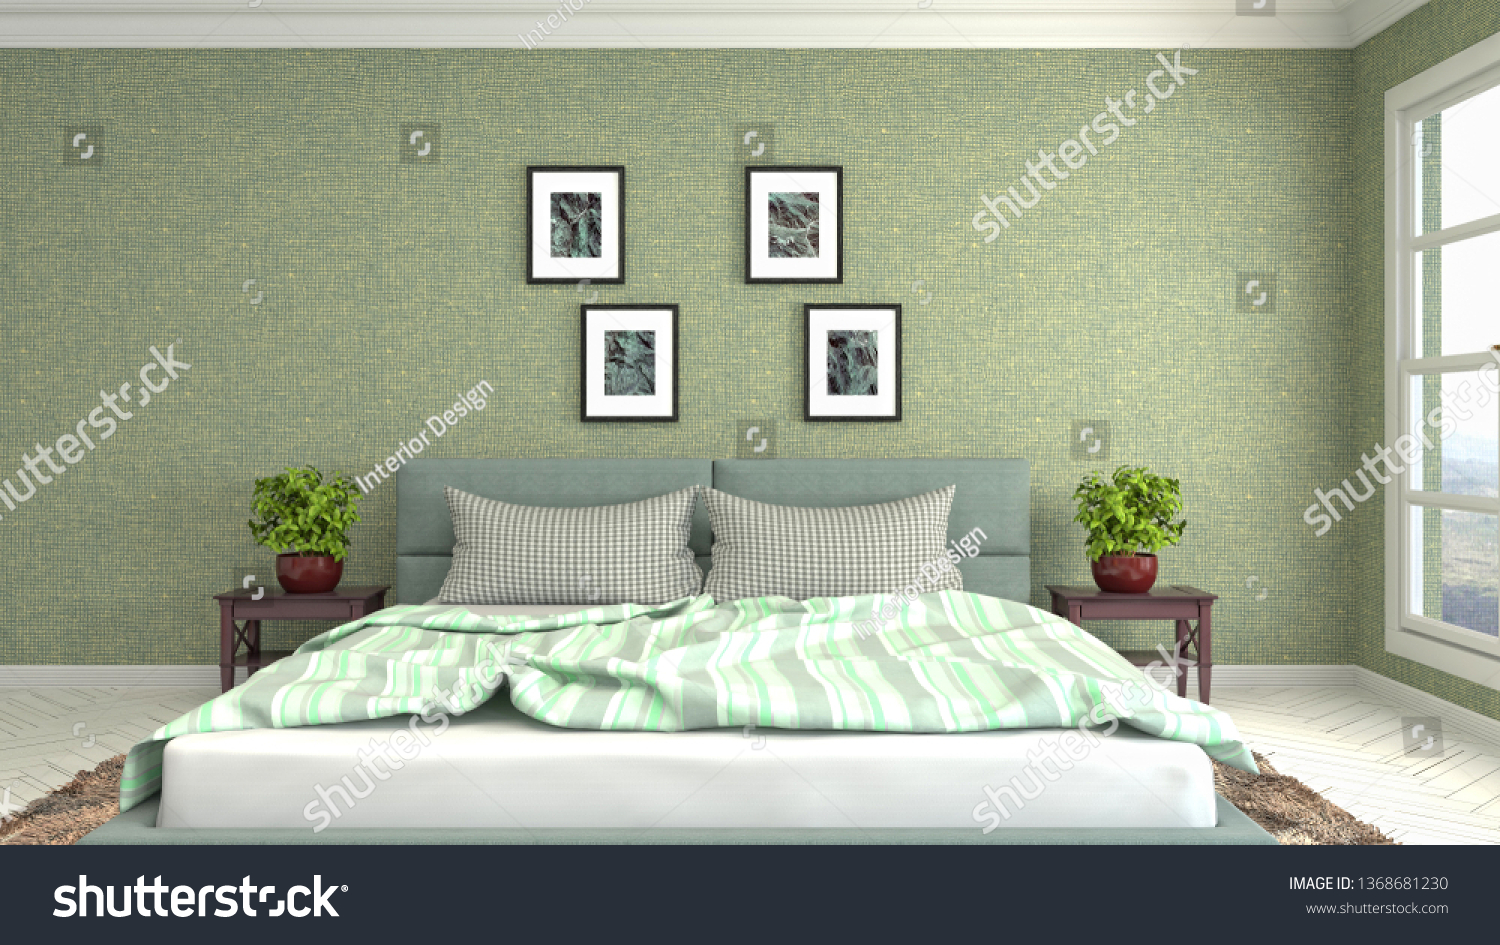 Bedroom interior. 3d illustration #1368681230